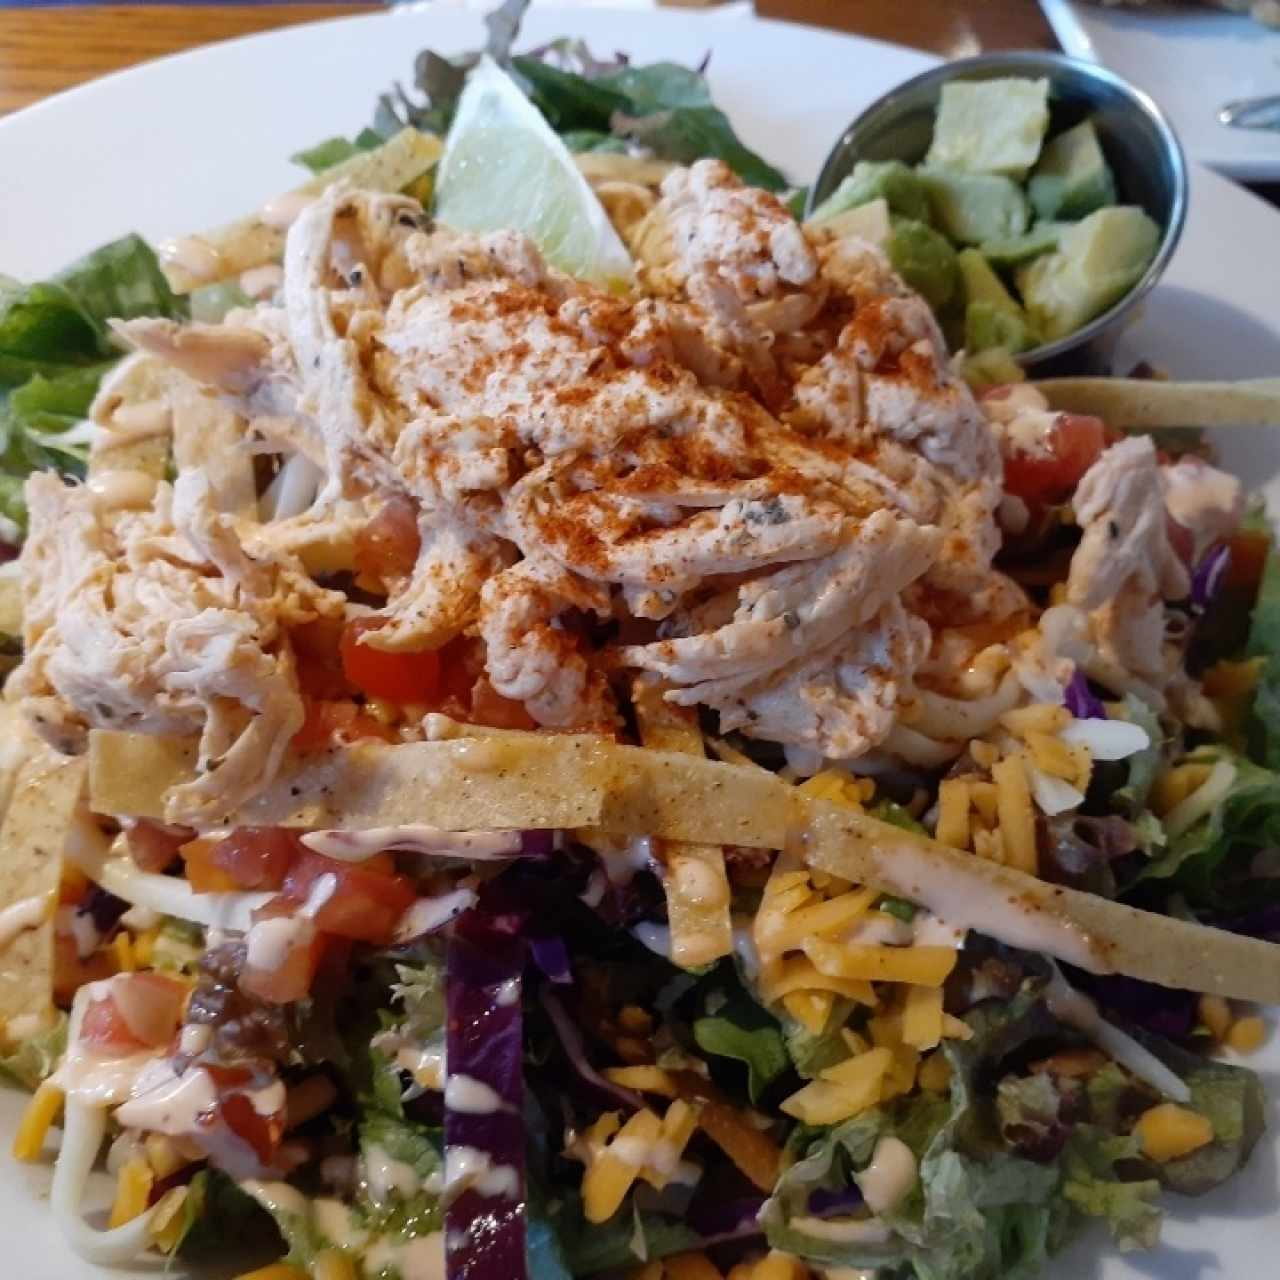 Yucatan Chipotle Chicken Salad